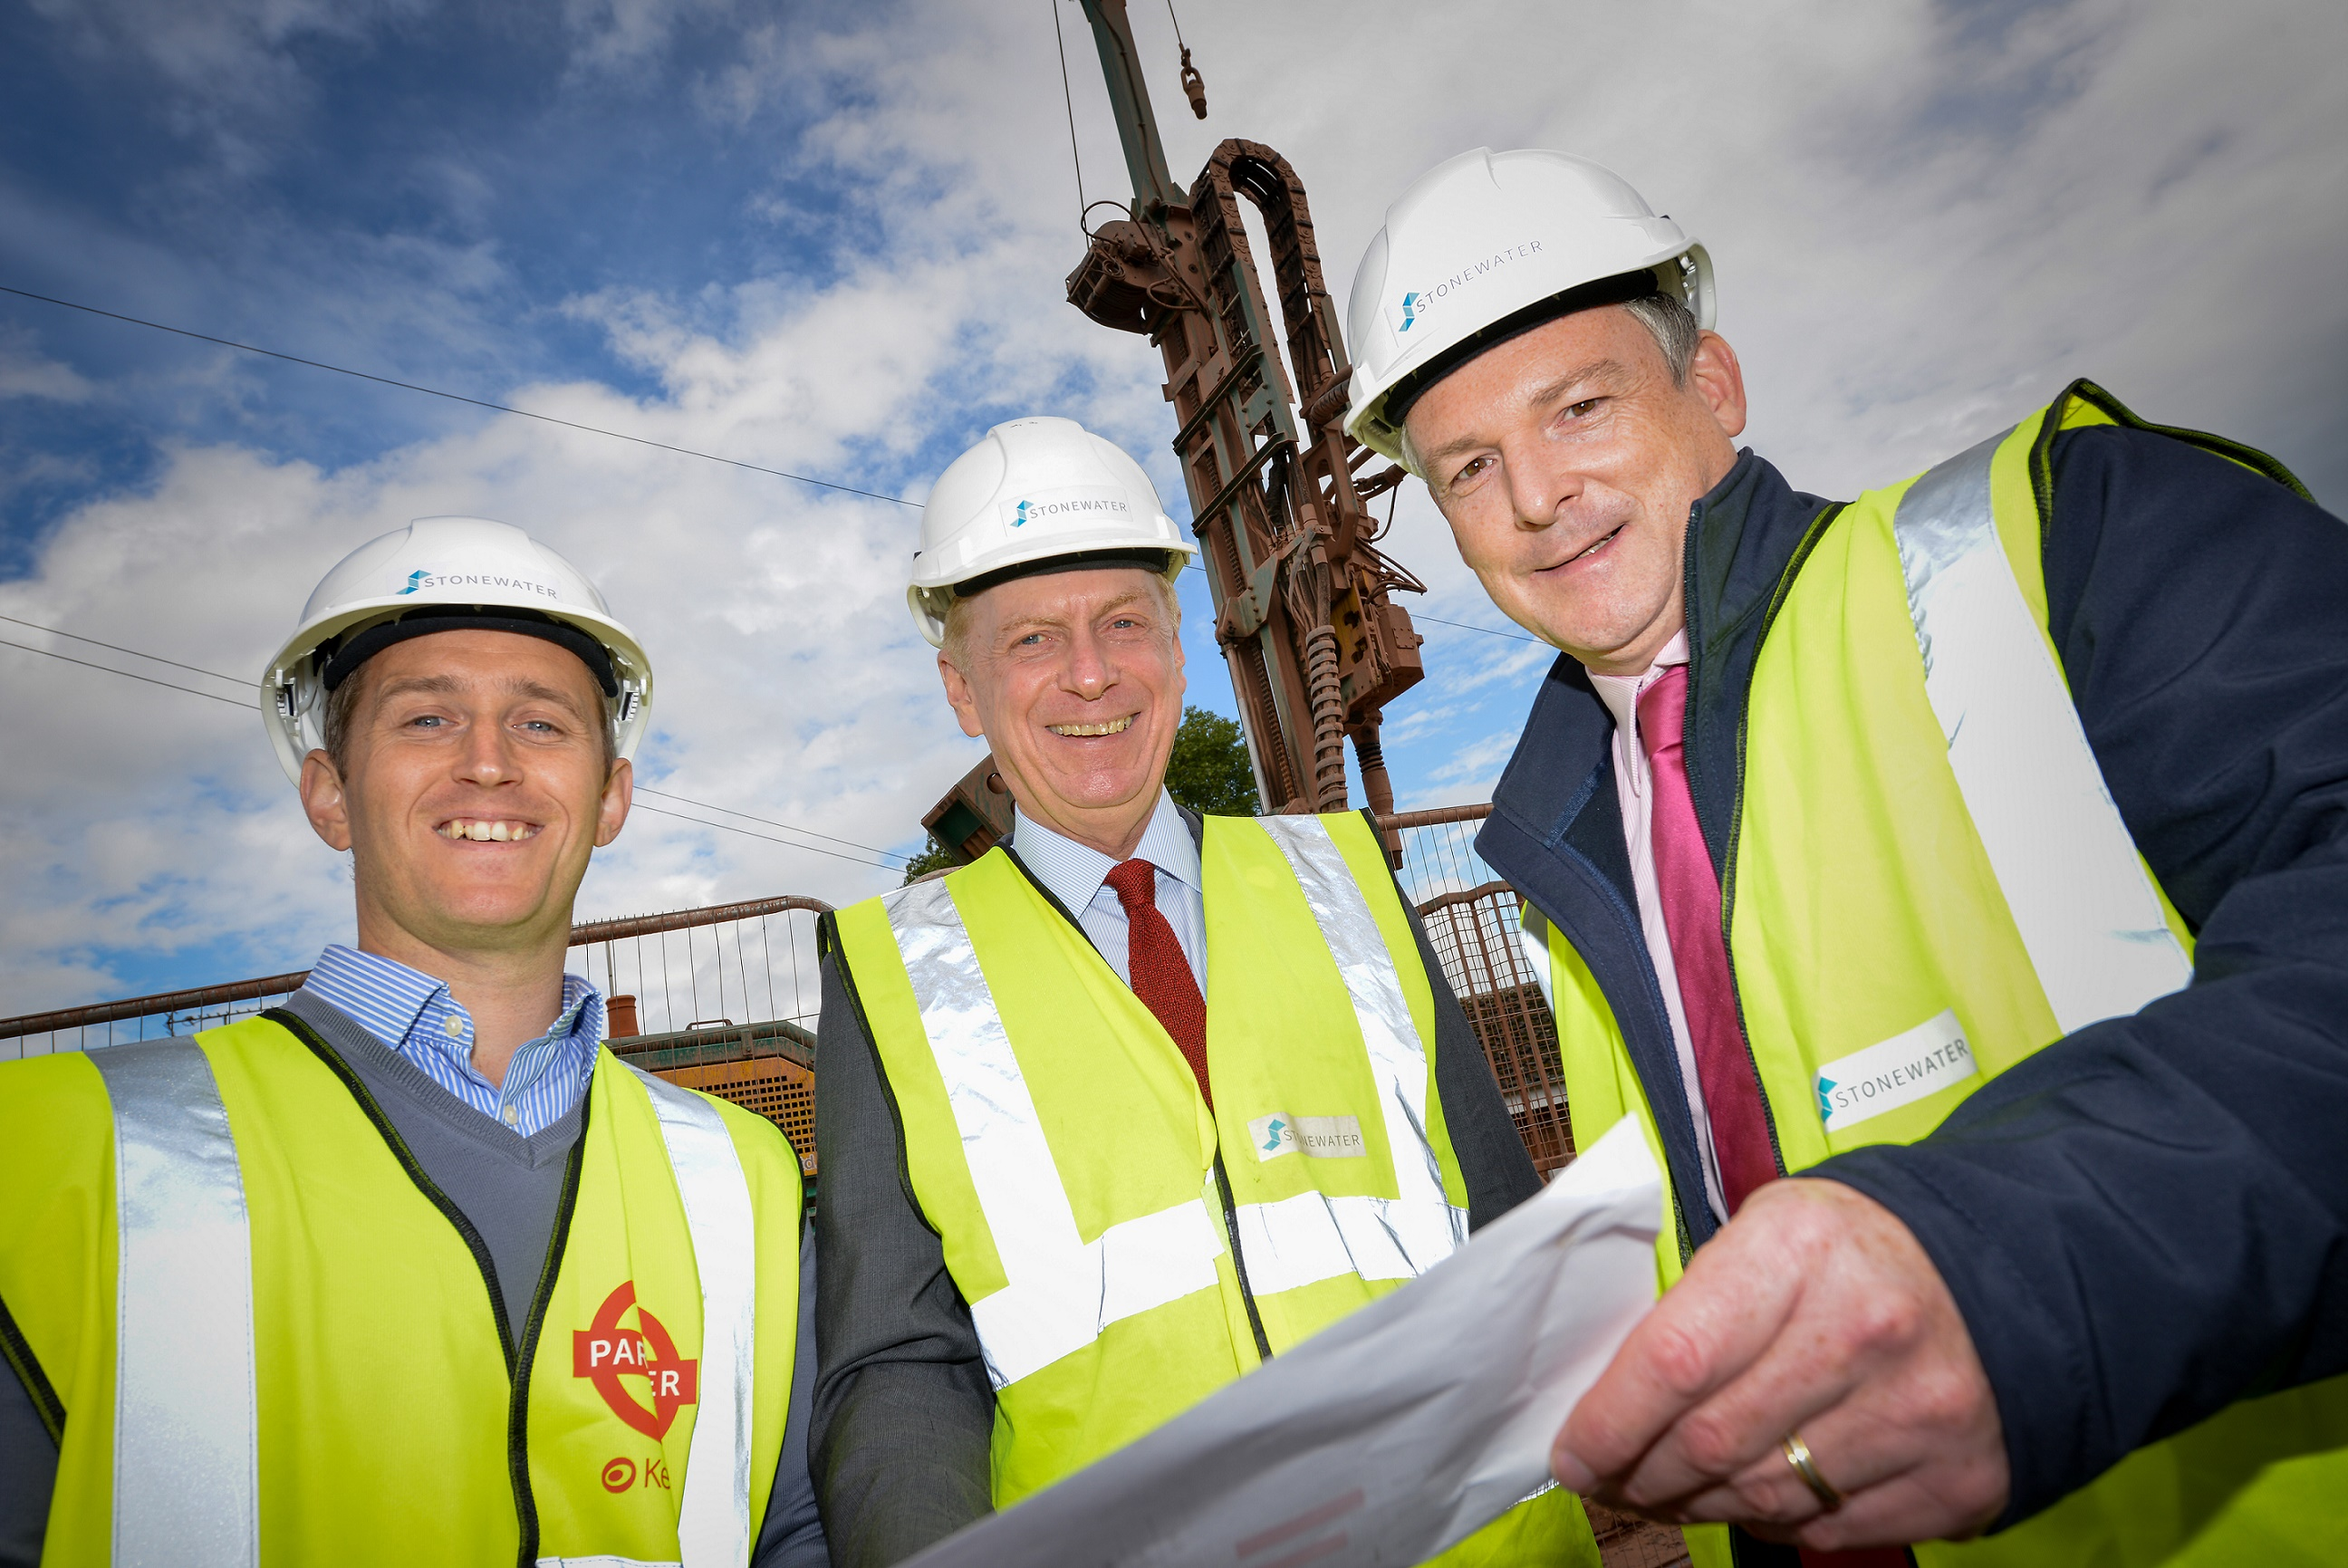 Weobley scheme shortlisted for District Heating Project of the Year award